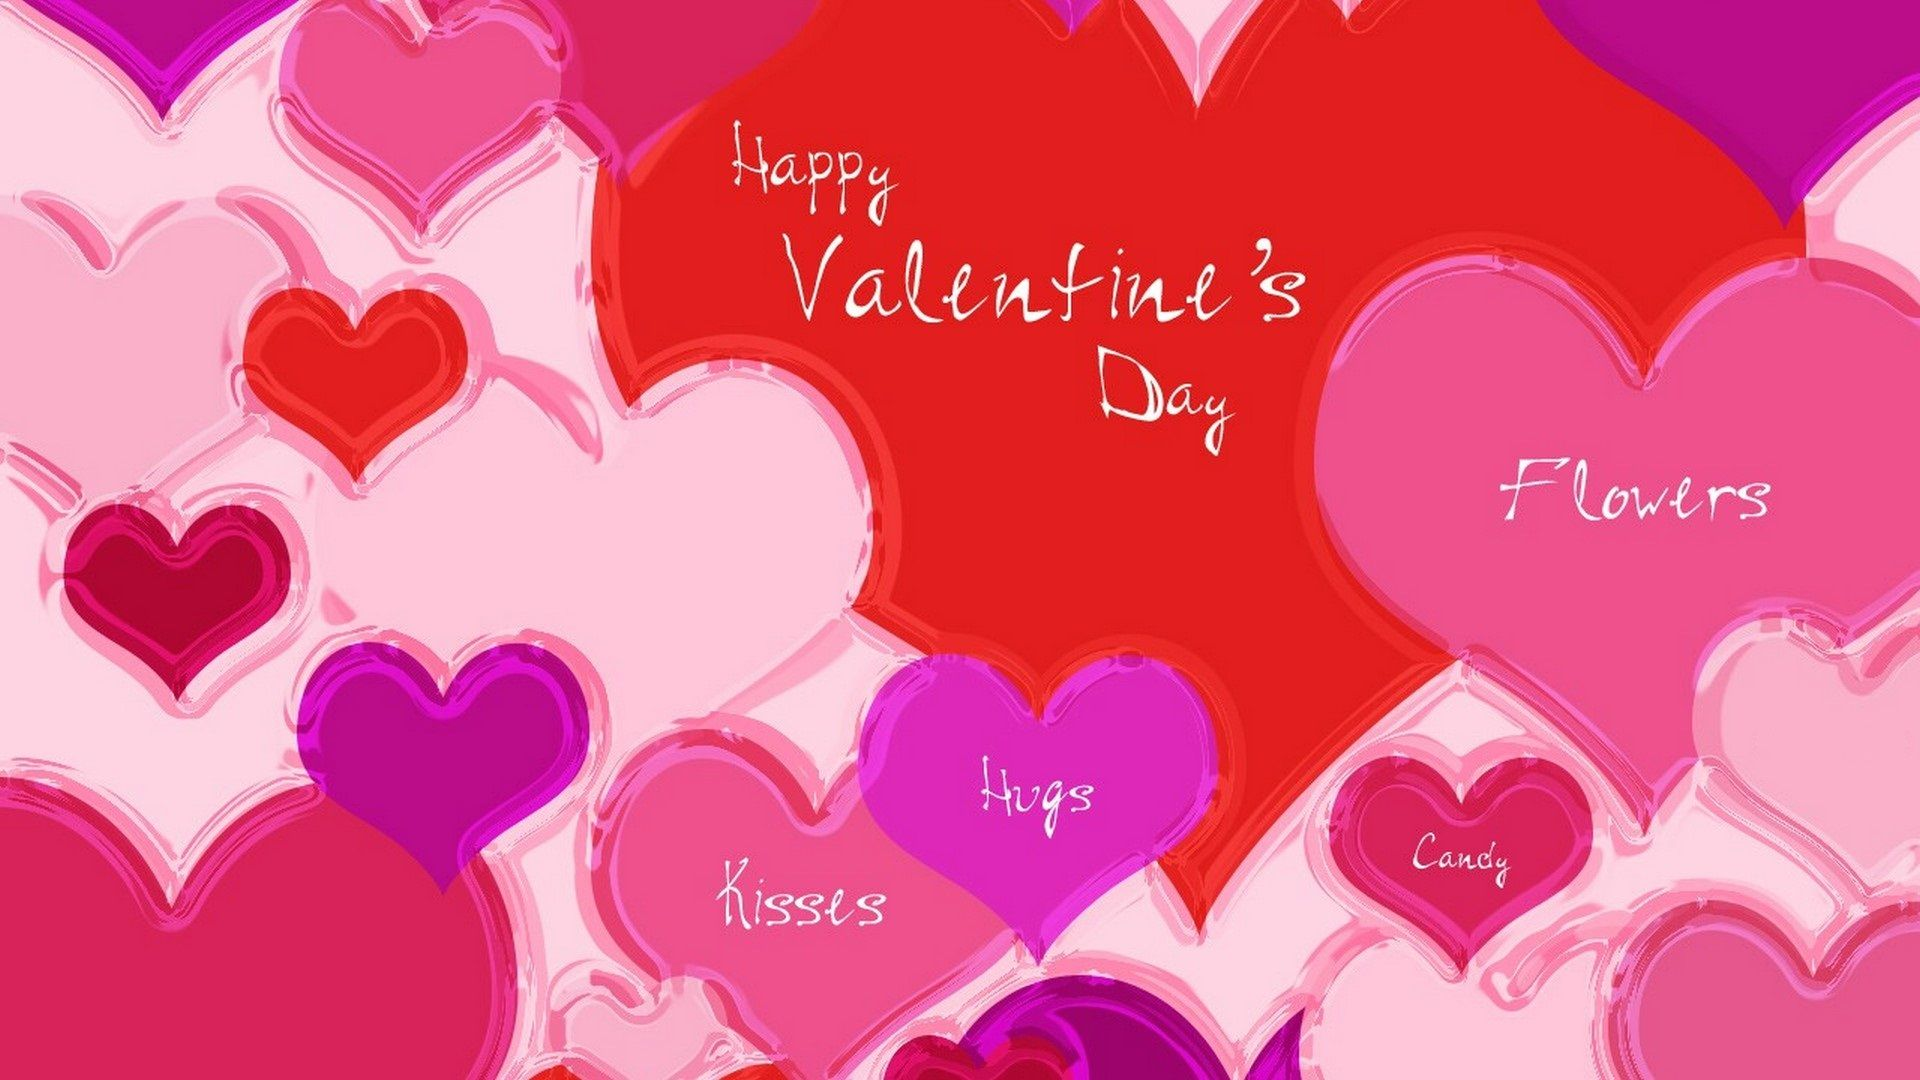 Hd Happy Valentines Day Wallpaper 2018 Wallpapers Hd Wallpaper